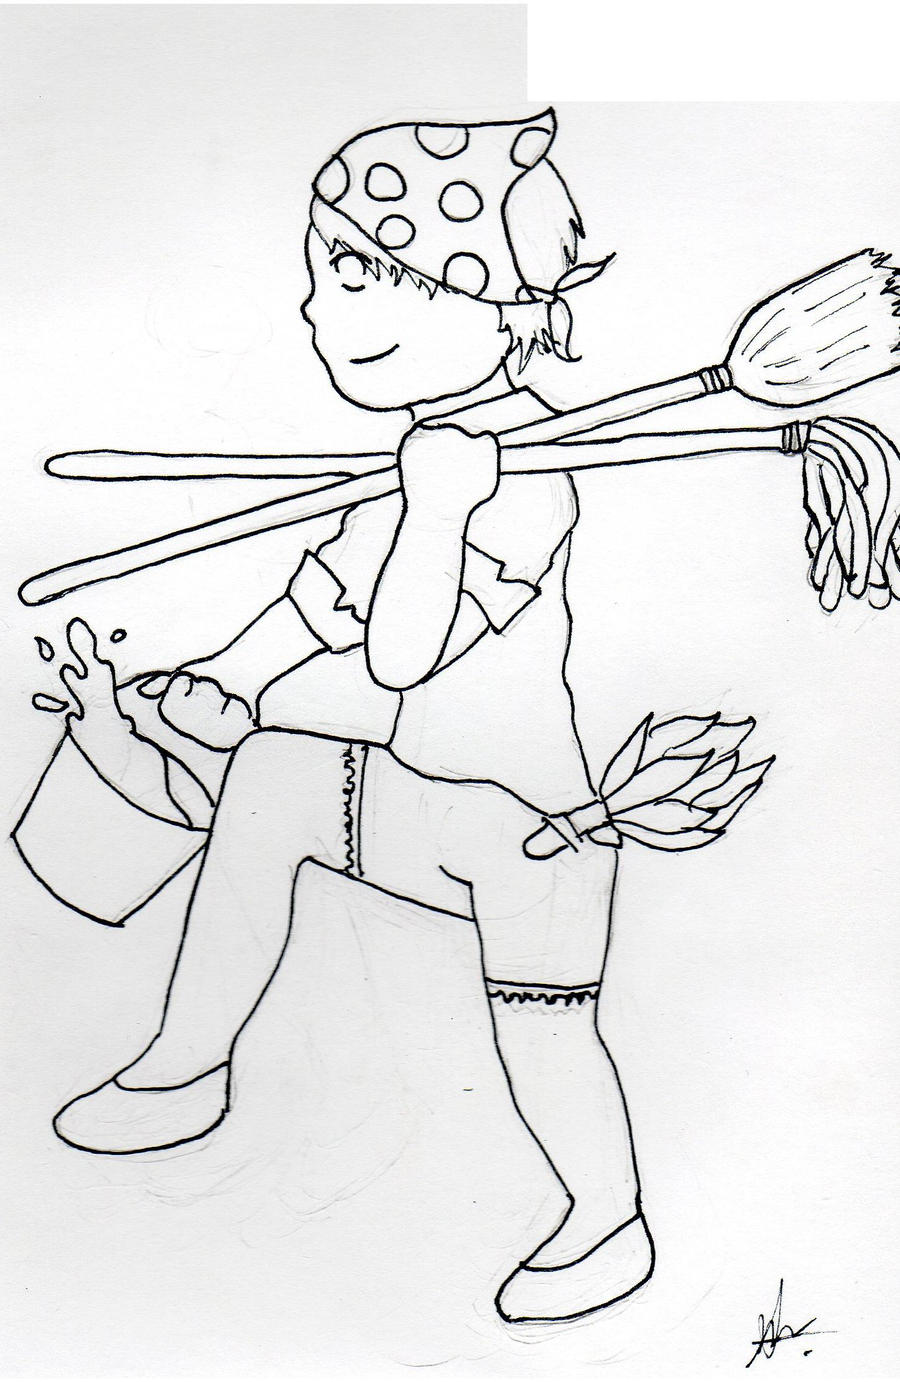 Royalty-Free House Cleaning Stock Clipart  Cartoons | Page 1